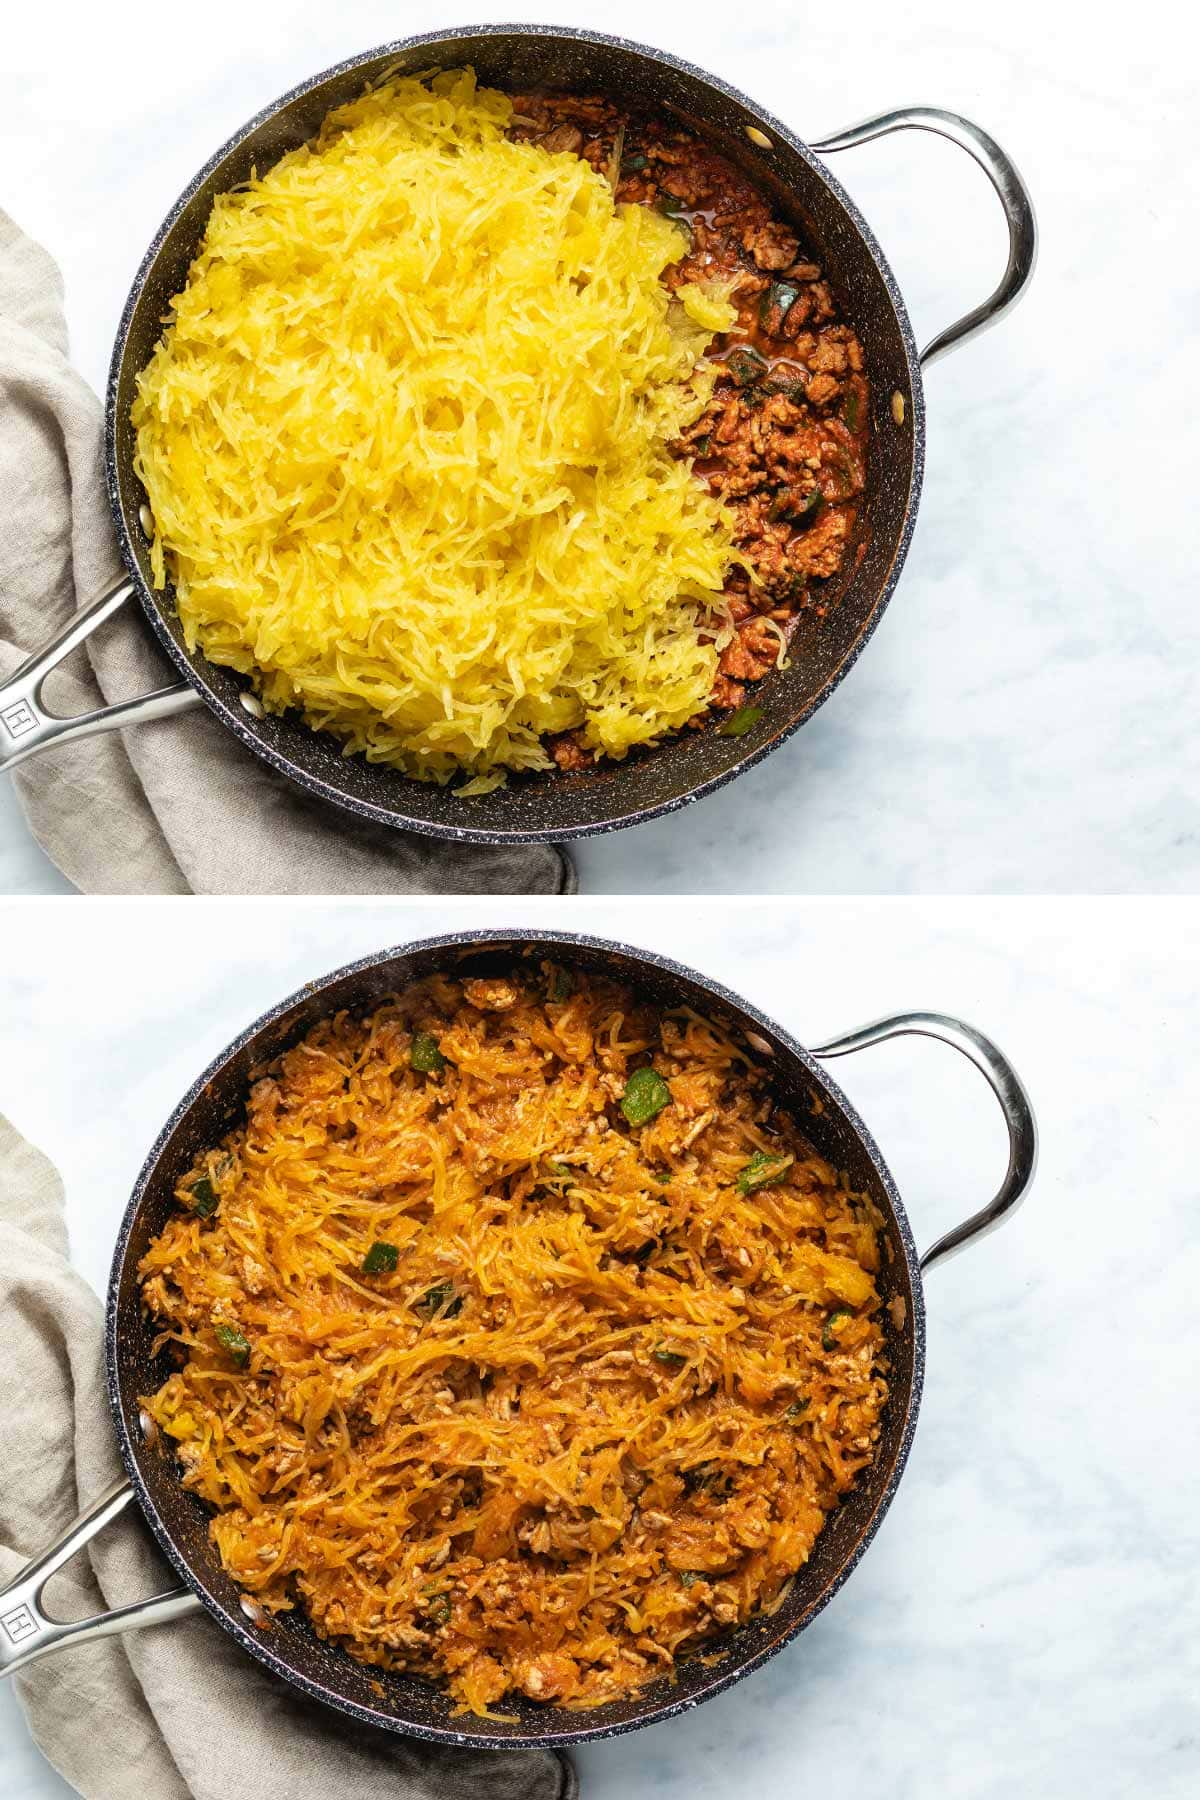 A two photo collage showing spaghetti squash being added to taco filling in a black skillet, then mixed together.